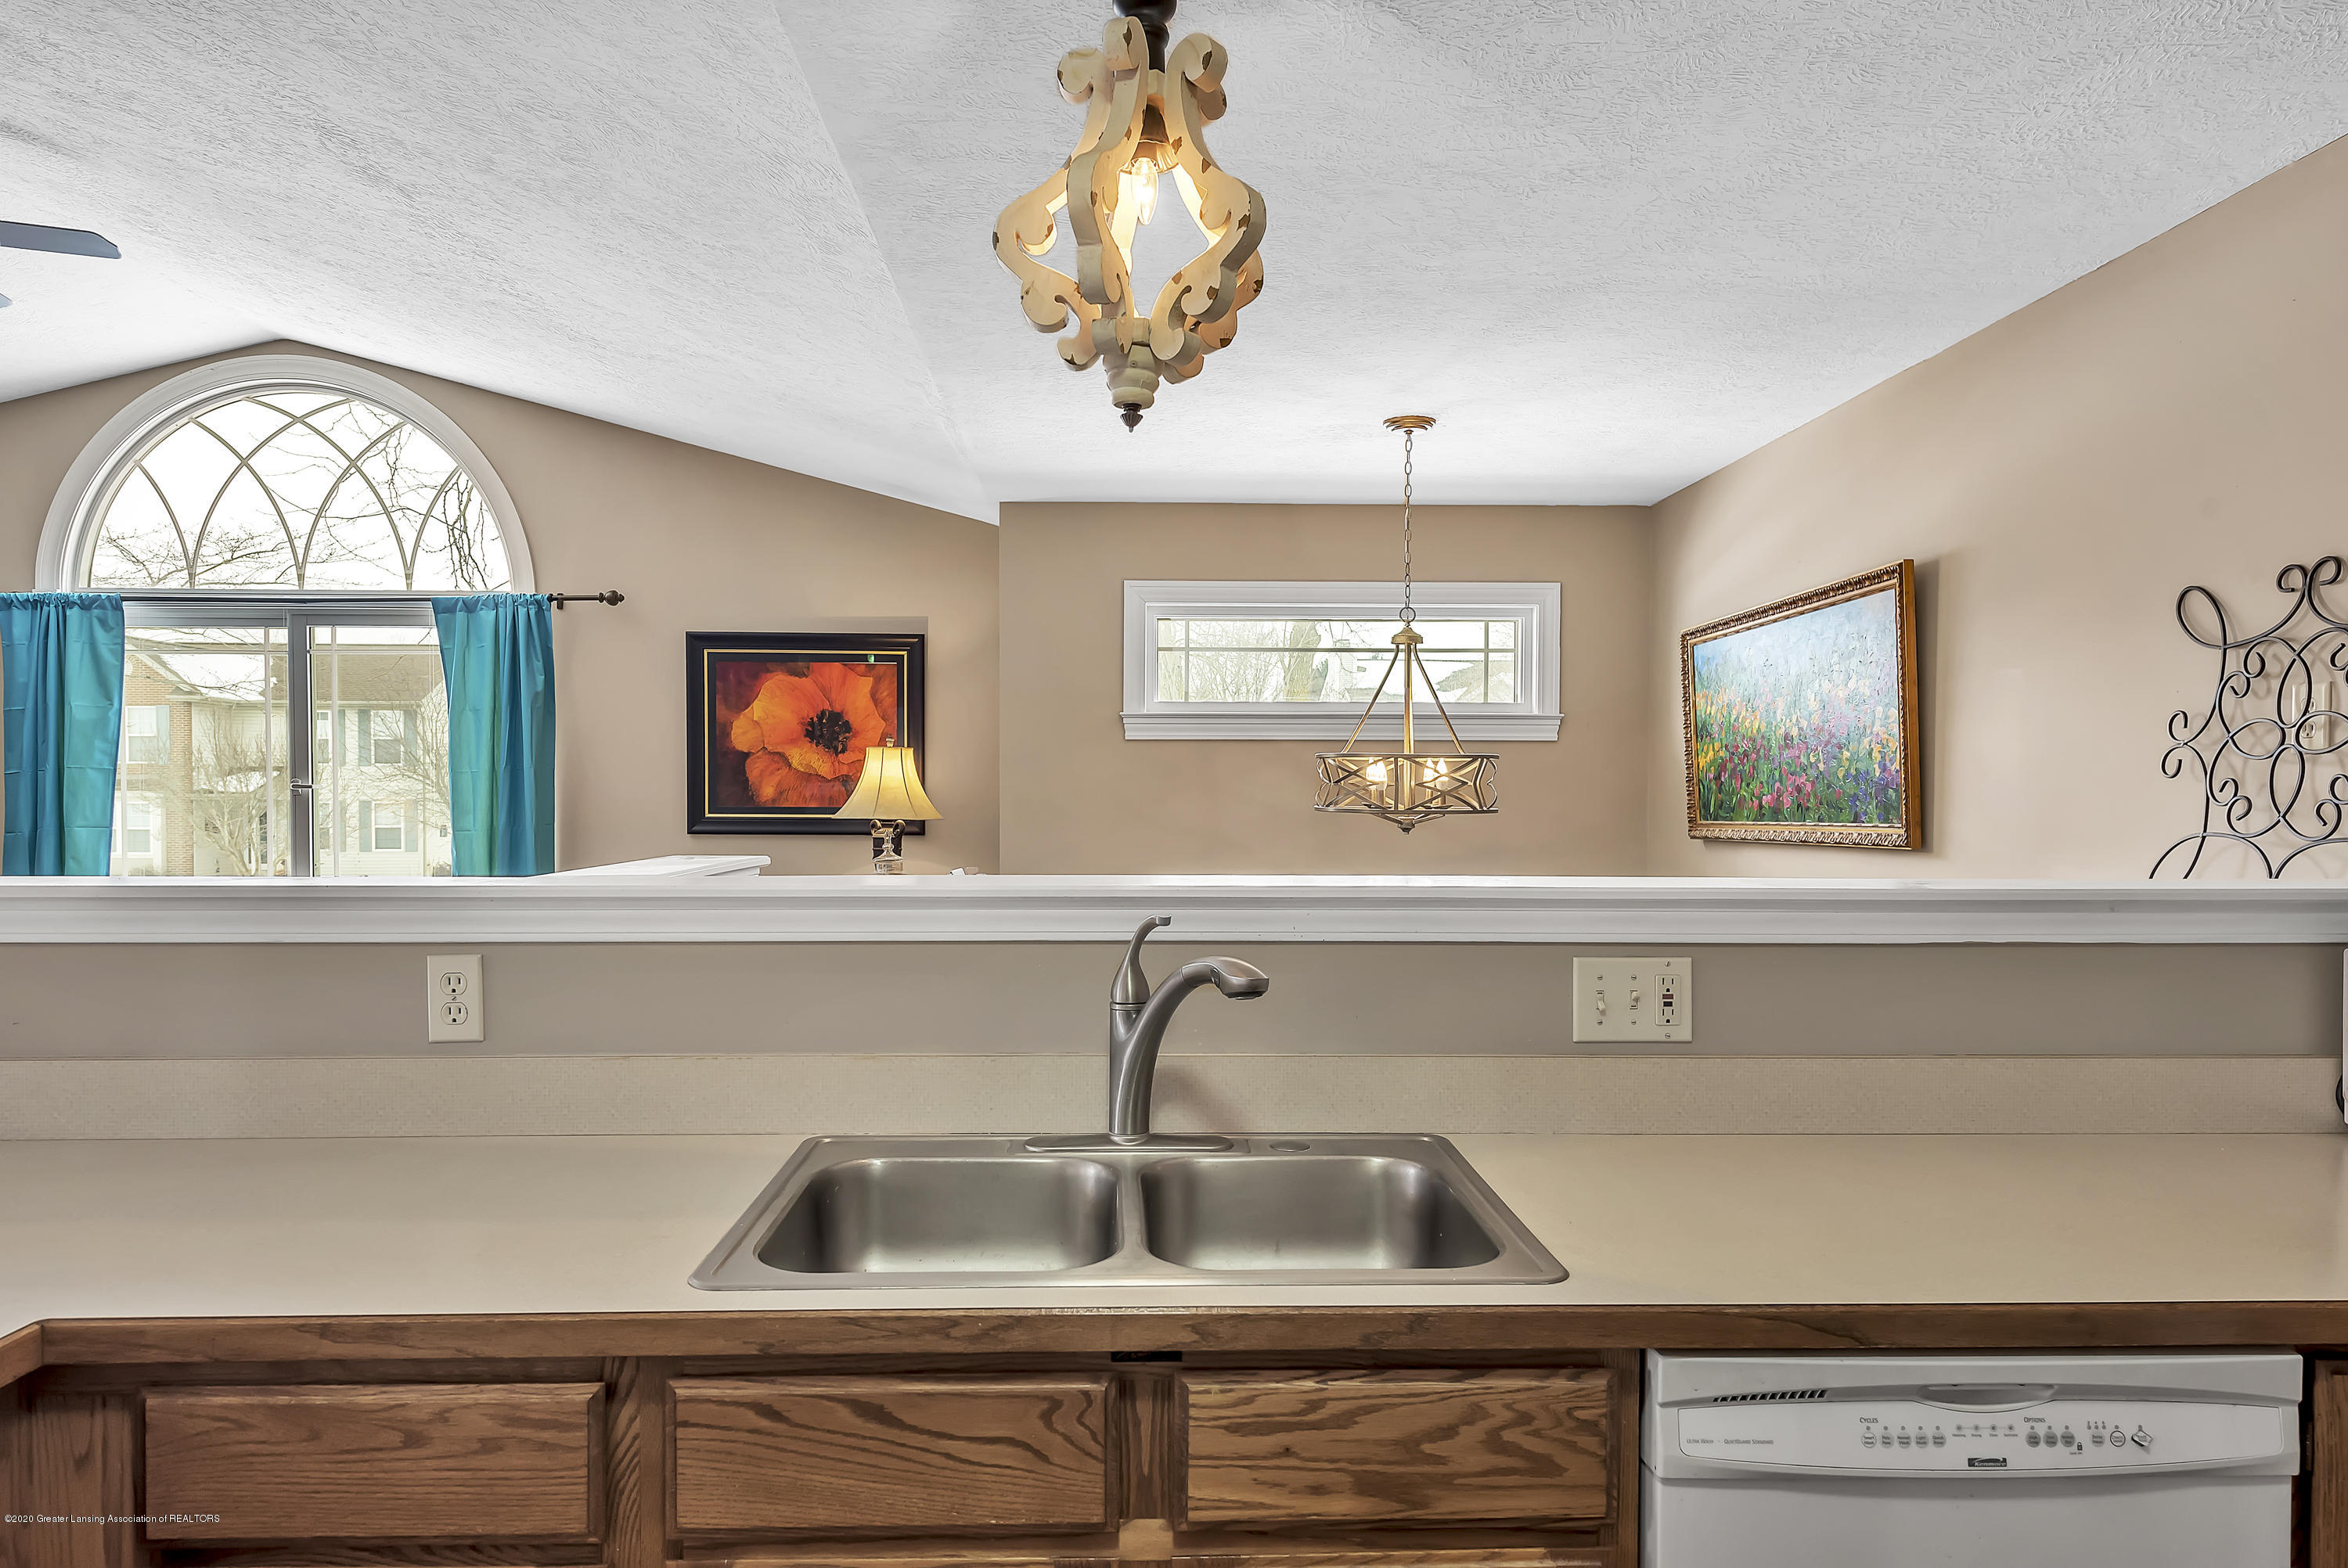 2450 Featherstone Dr - 2450-Featherstone-Dr-WindowStill-Real-Es - 15